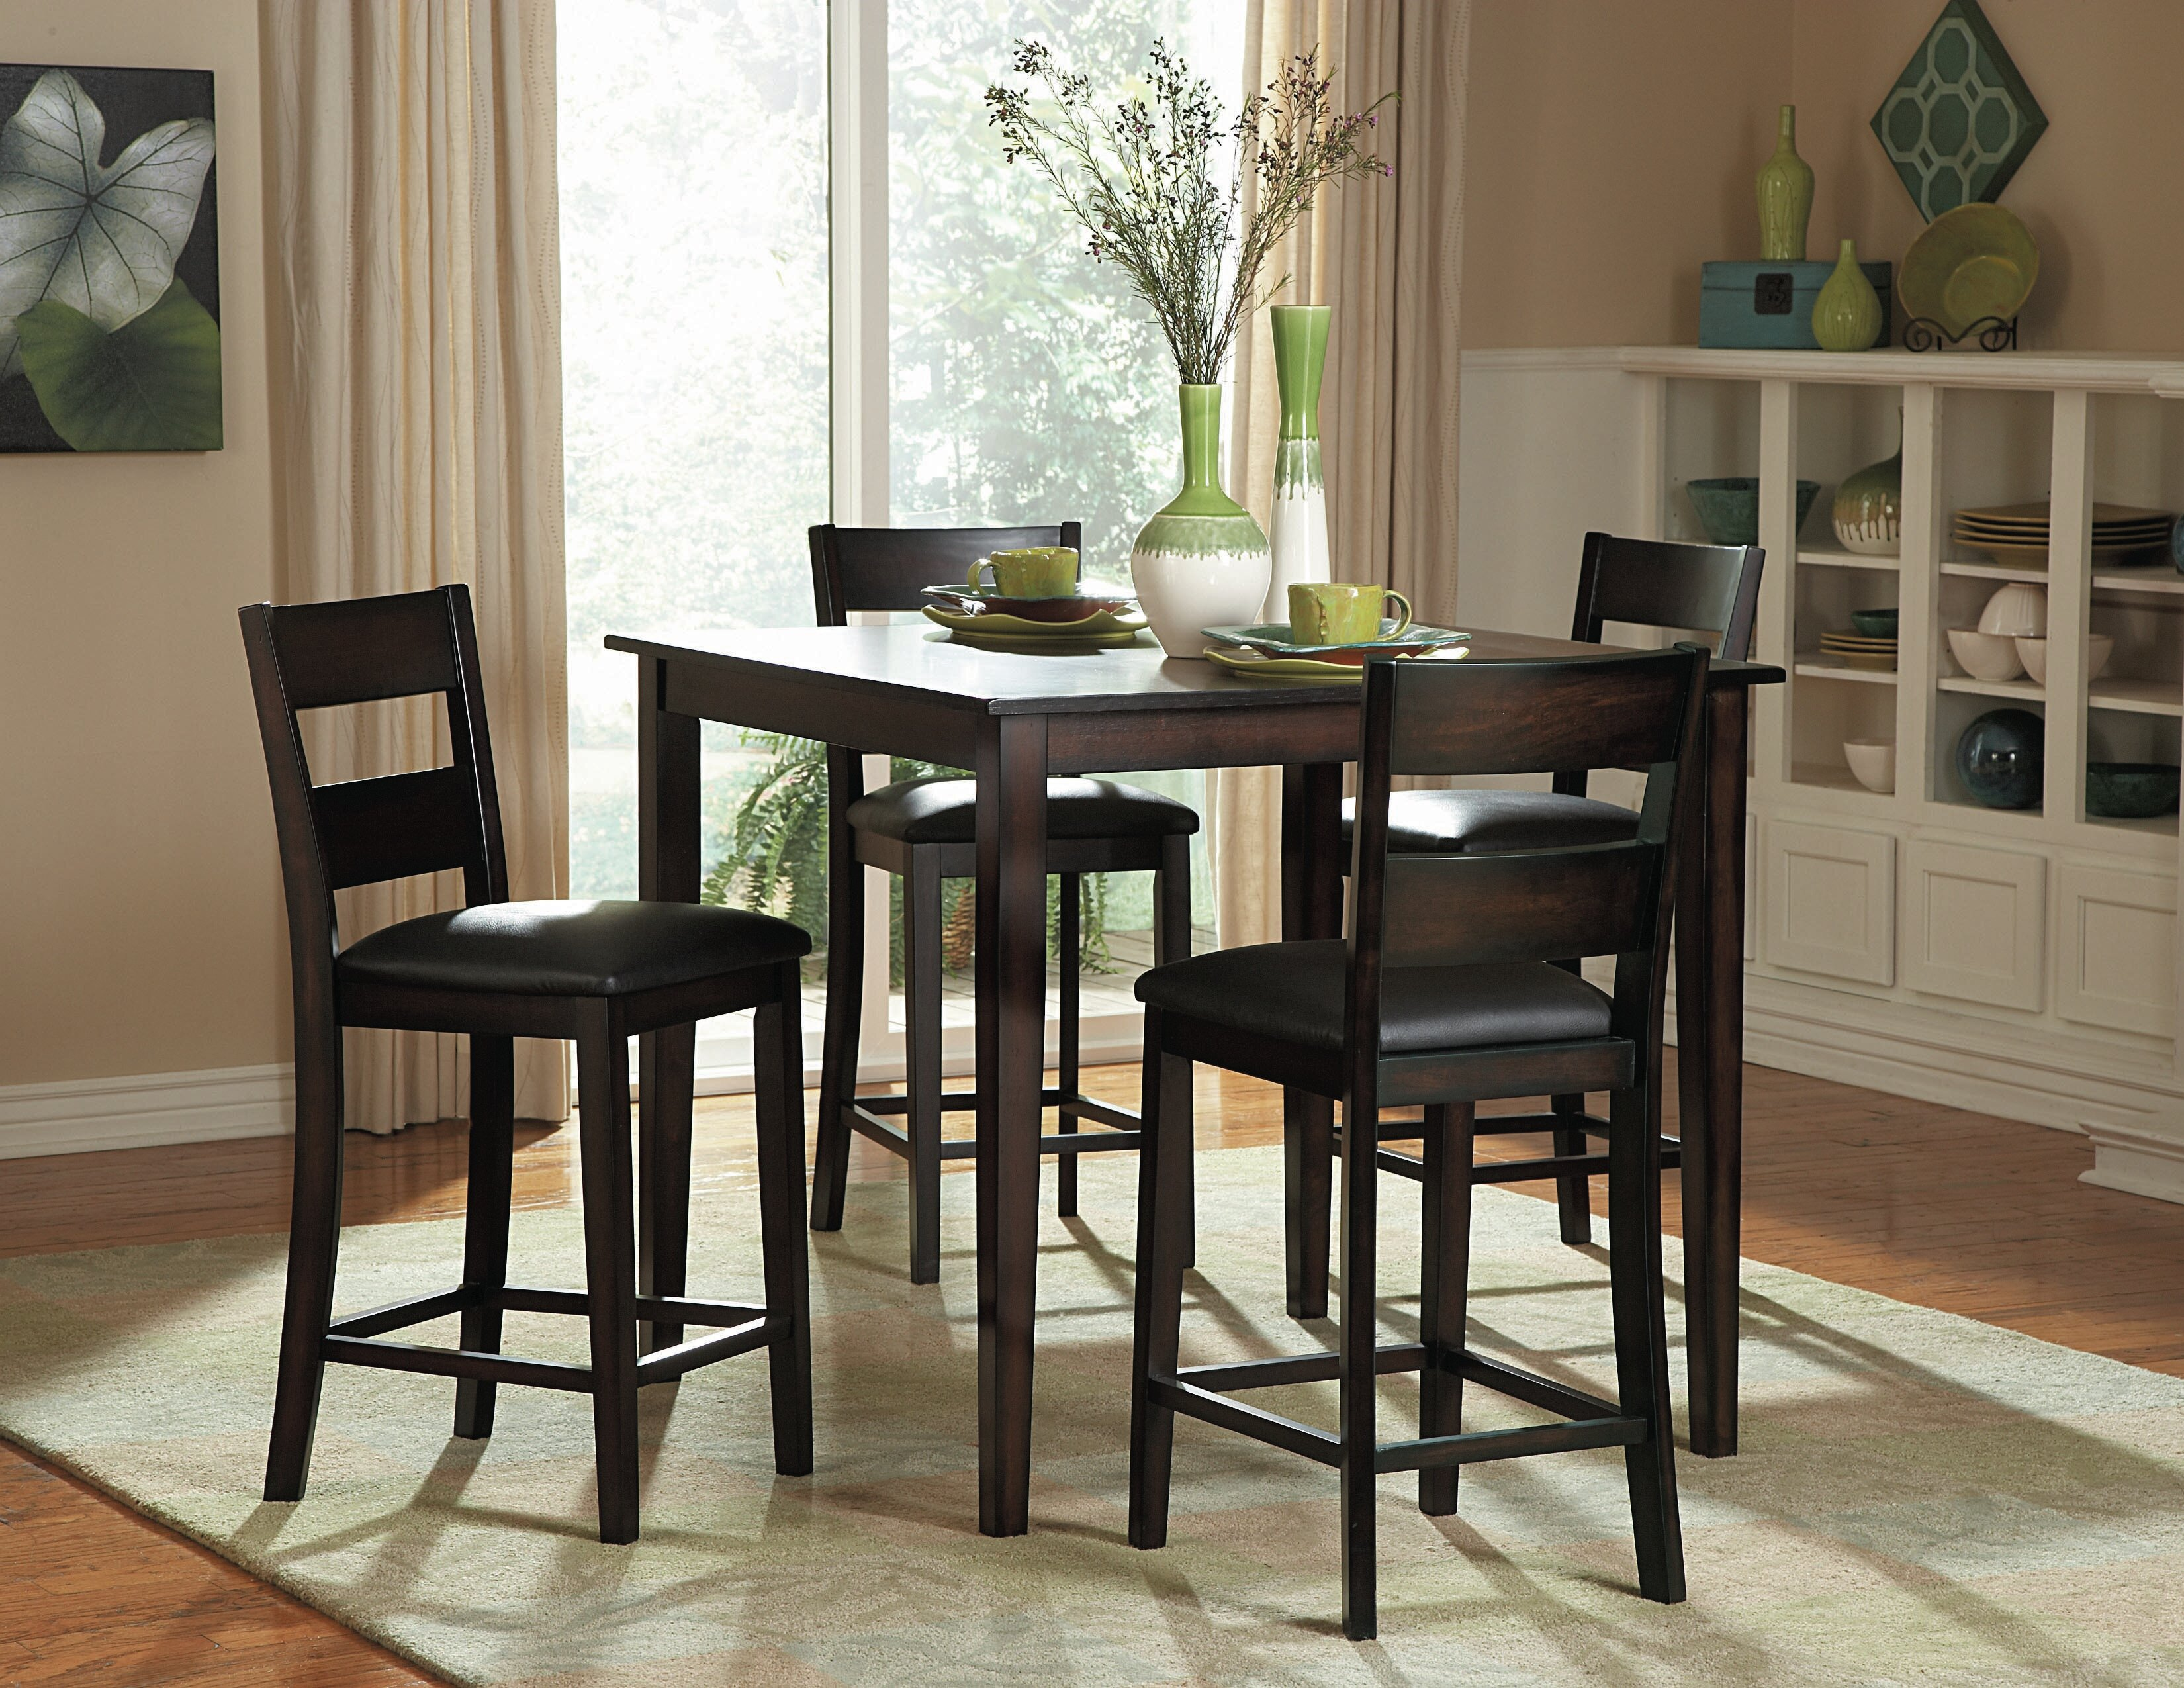 z shop thomaston black product brushed dining counter chairs chair for height set